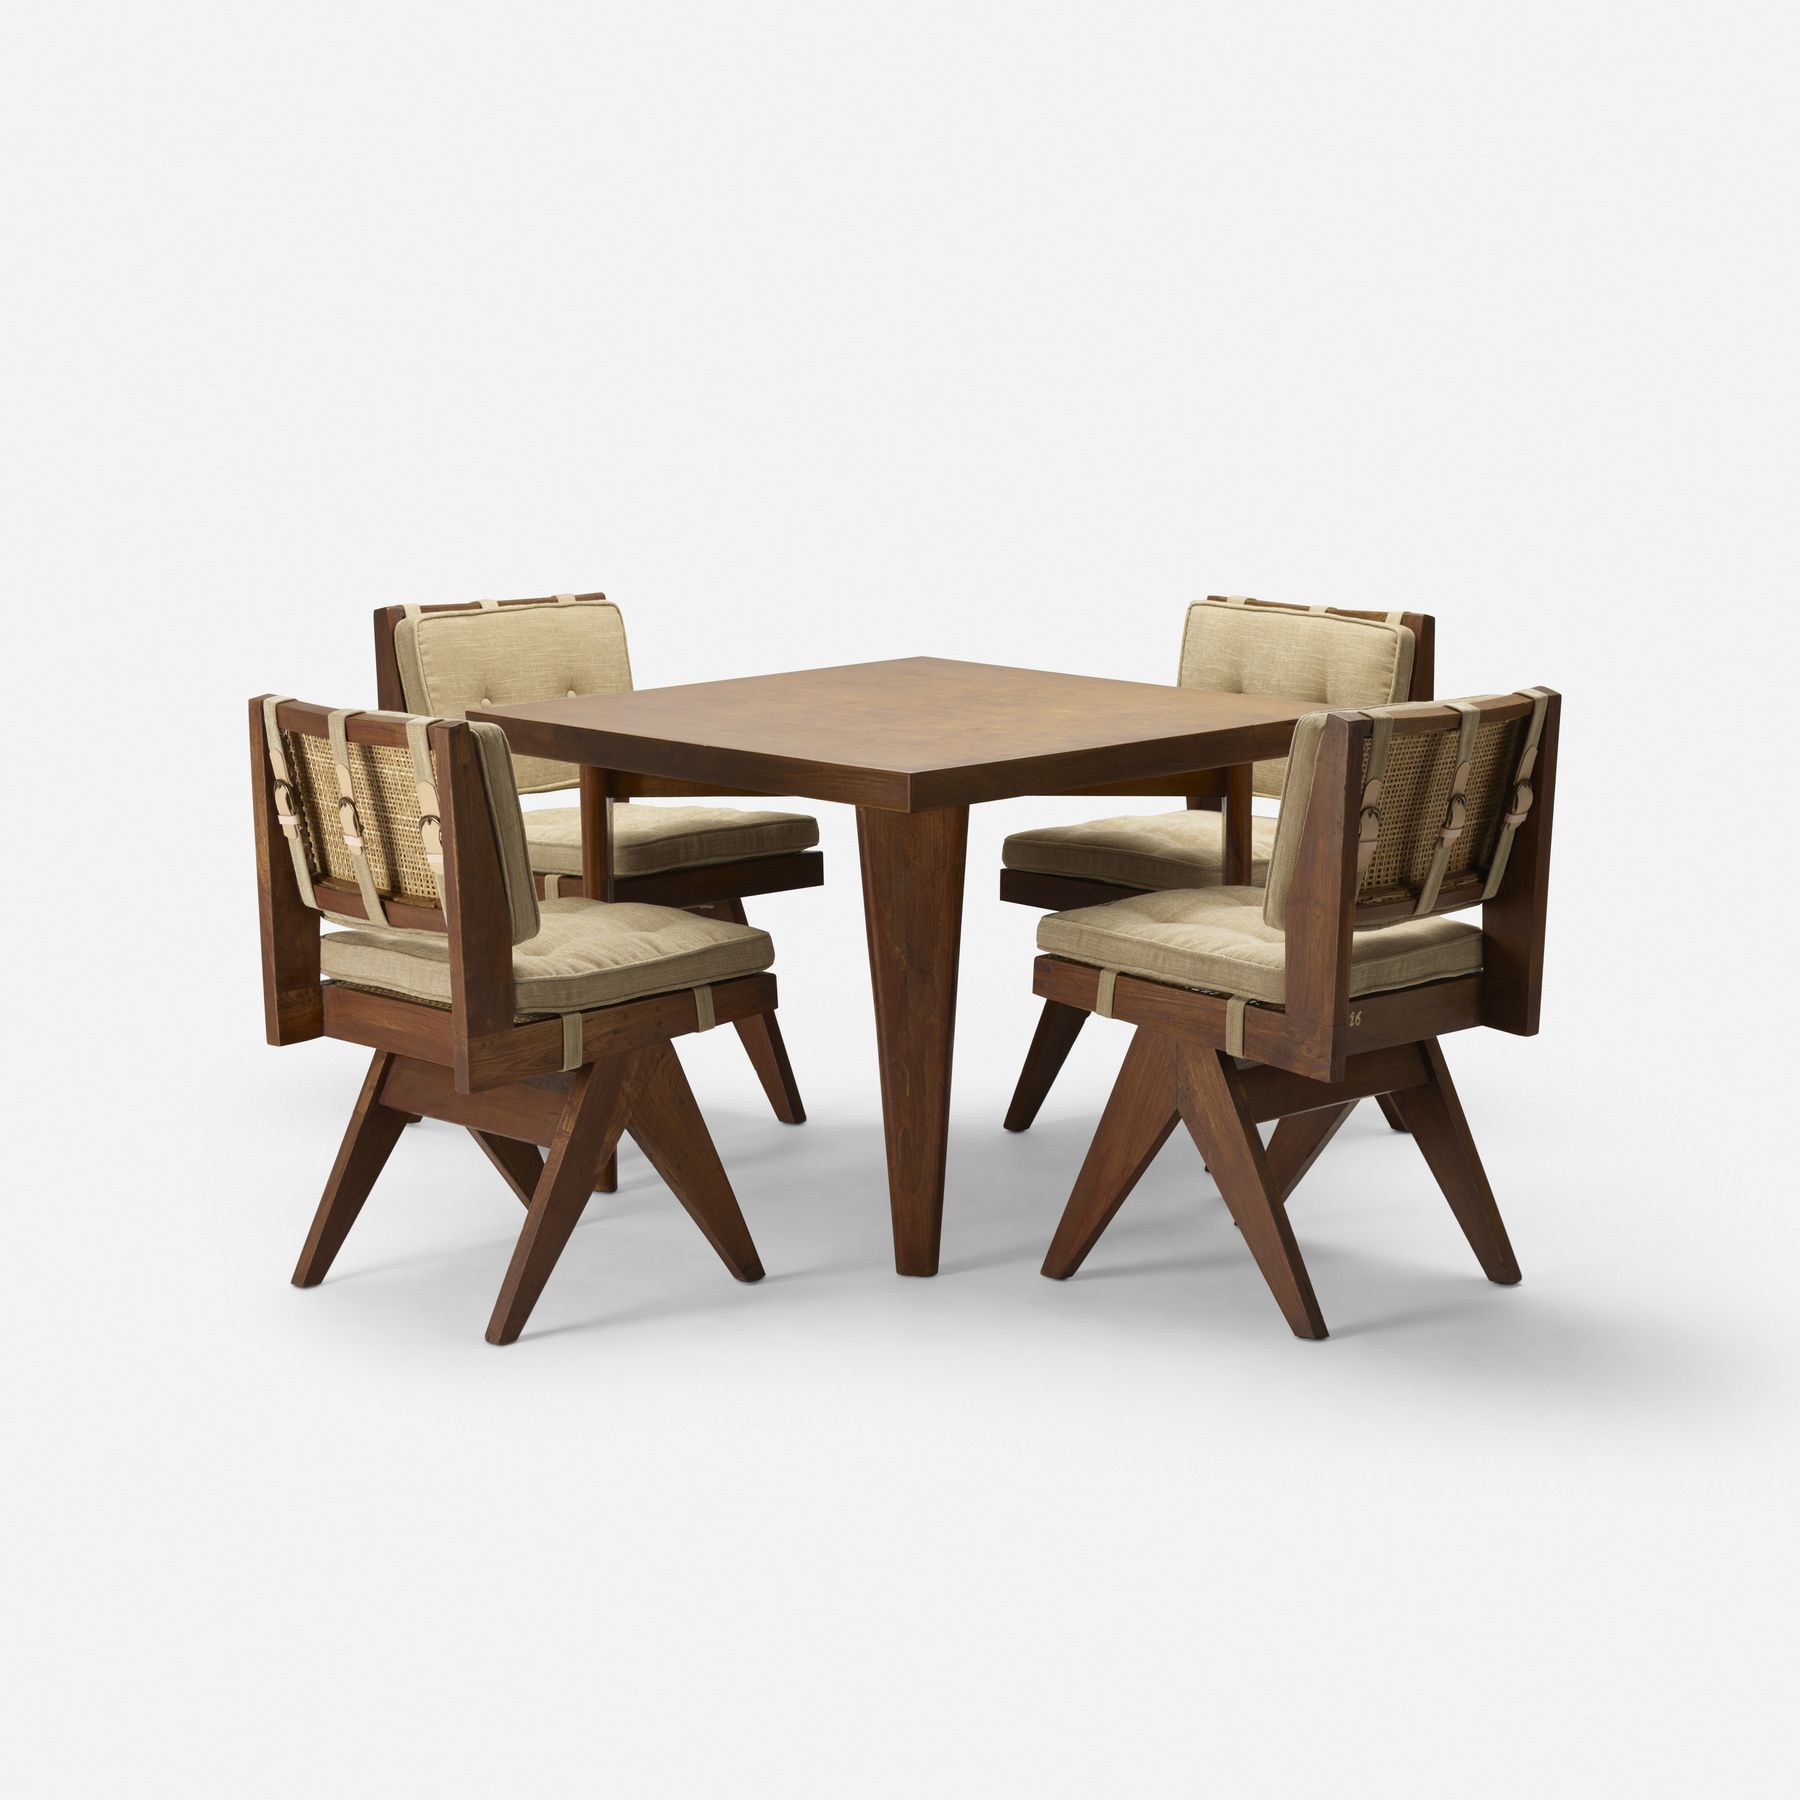 Pierre Jeanneret Cafeteria Table And Four Chairs From Chandigarh